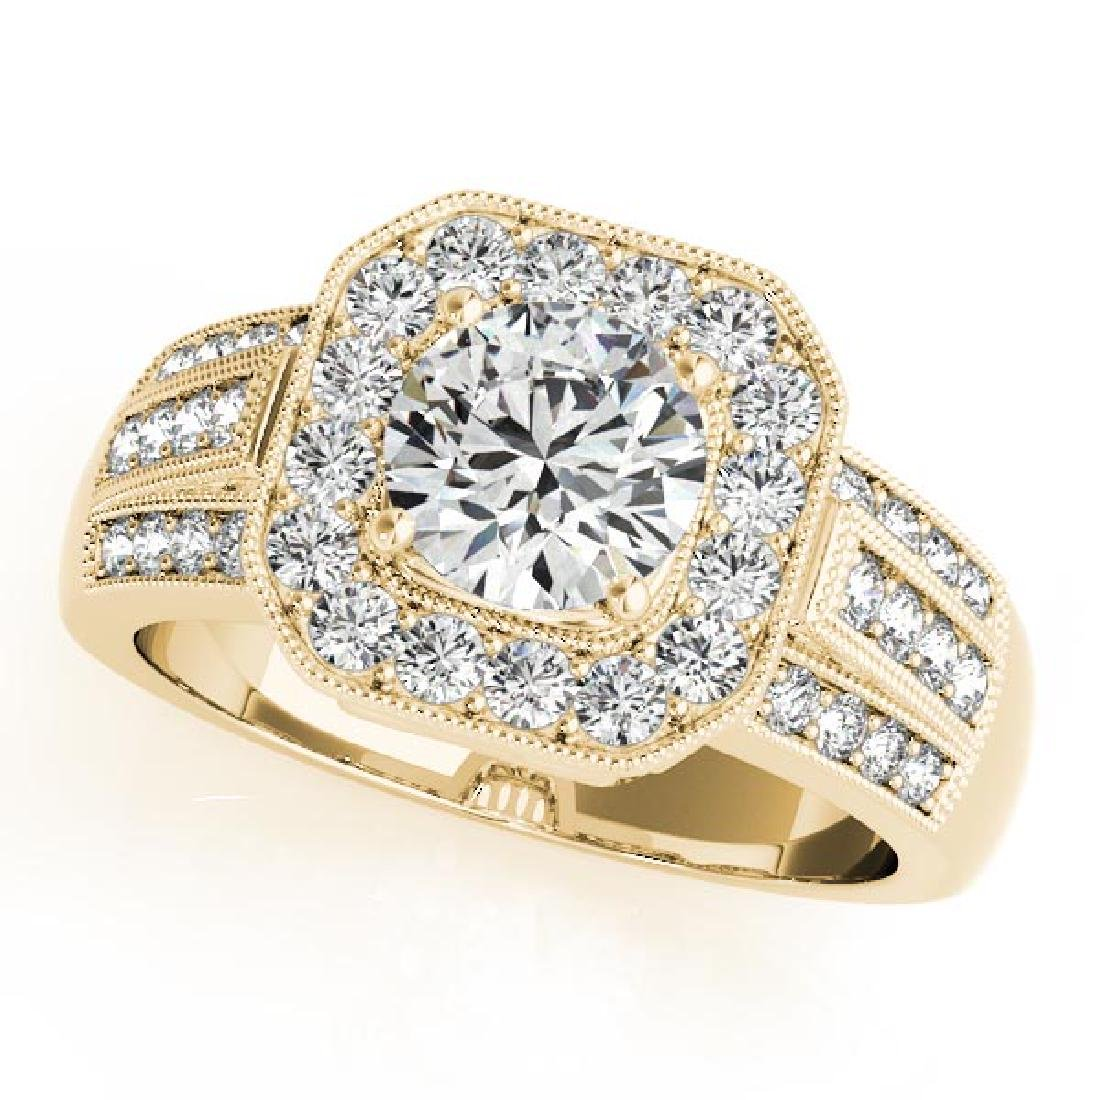 CERTIFIED 18K YELLOW GOLD 1.20 CT G-H/VS-SI1 DIAMOND HA